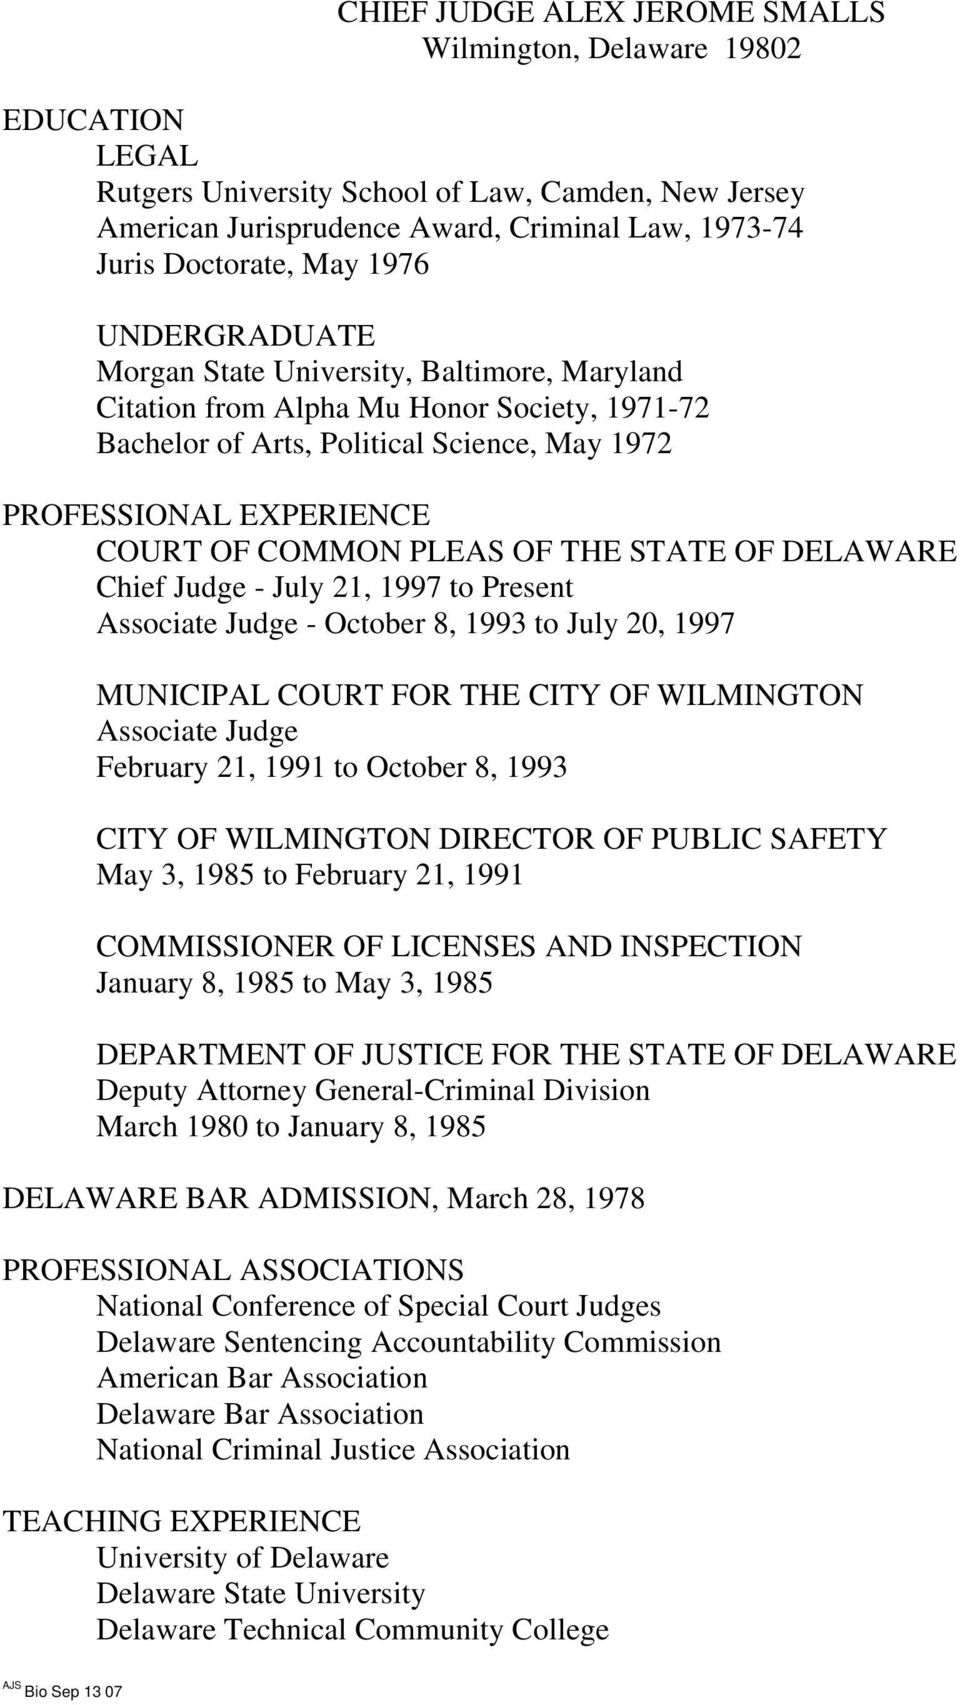 PLEAS OF THE STATE OF DELAWARE Chief Judge - July 21, 1997 to Present Associate Judge - October 8, 1993 to July 20, 1997 MUNICIPAL COURT FOR THE CITY OF WILMINGTON Associate Judge February 21, 1991